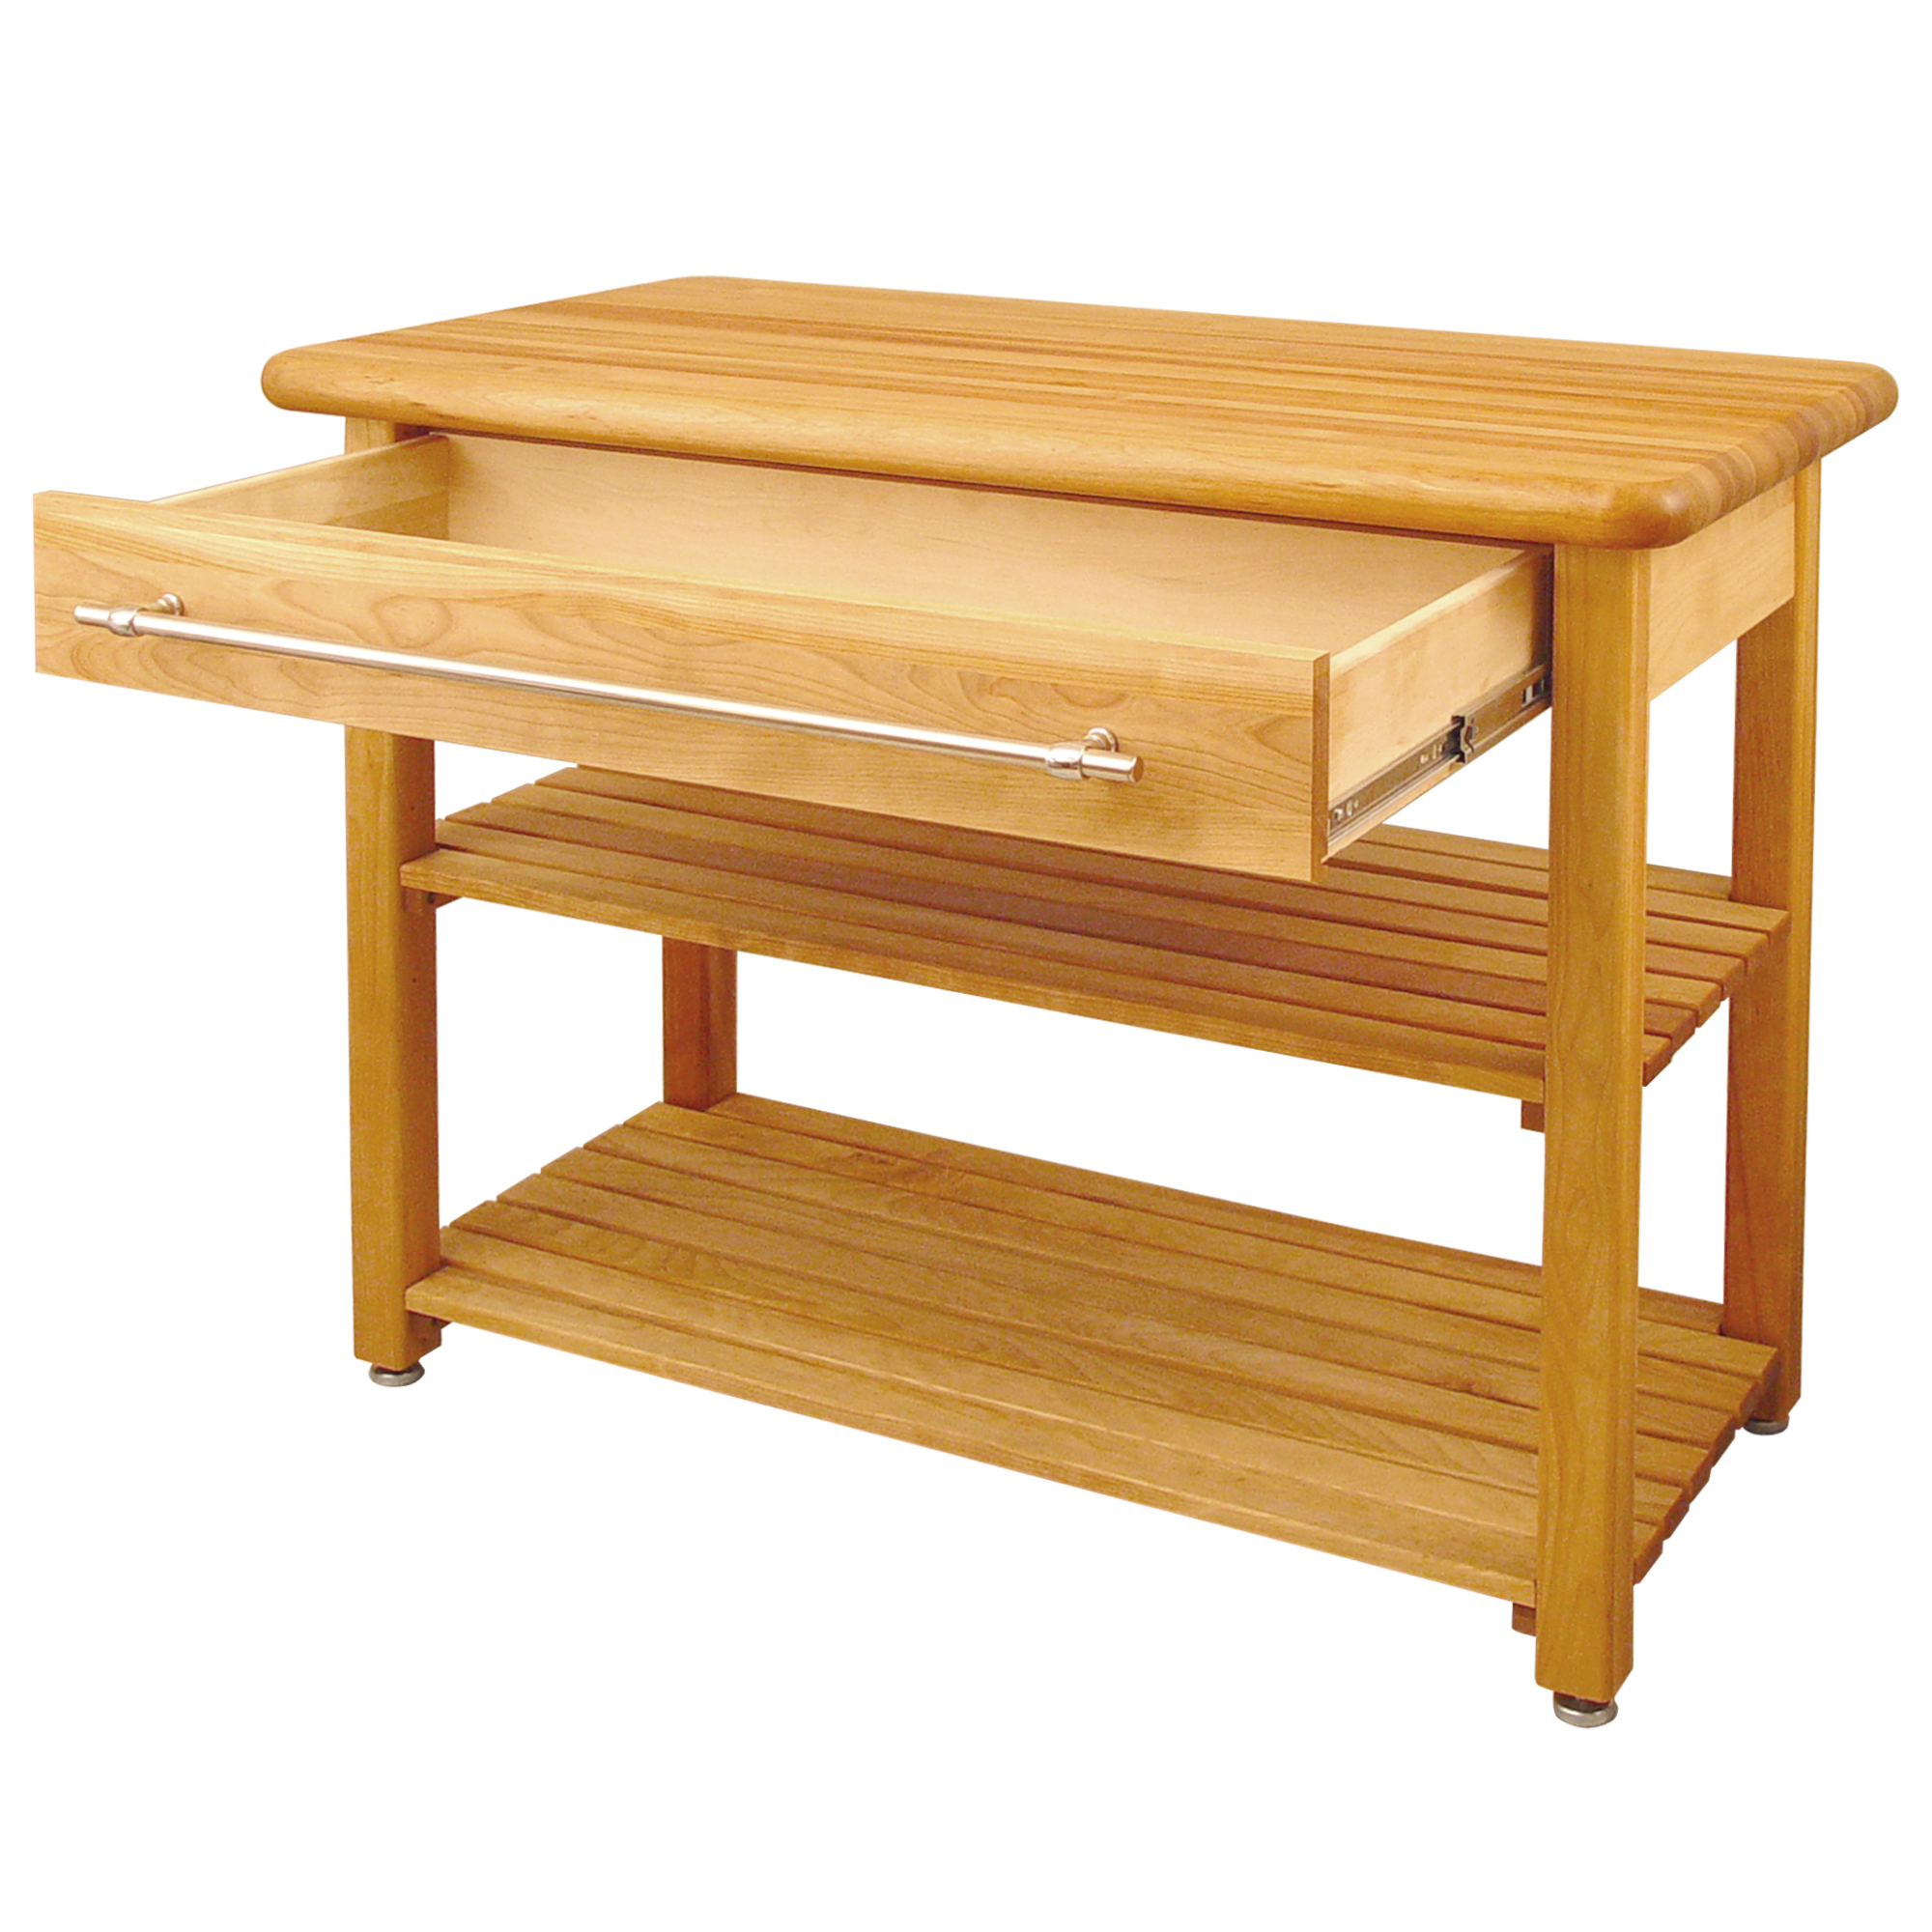 contemporary harvest butcher block table by Catskill